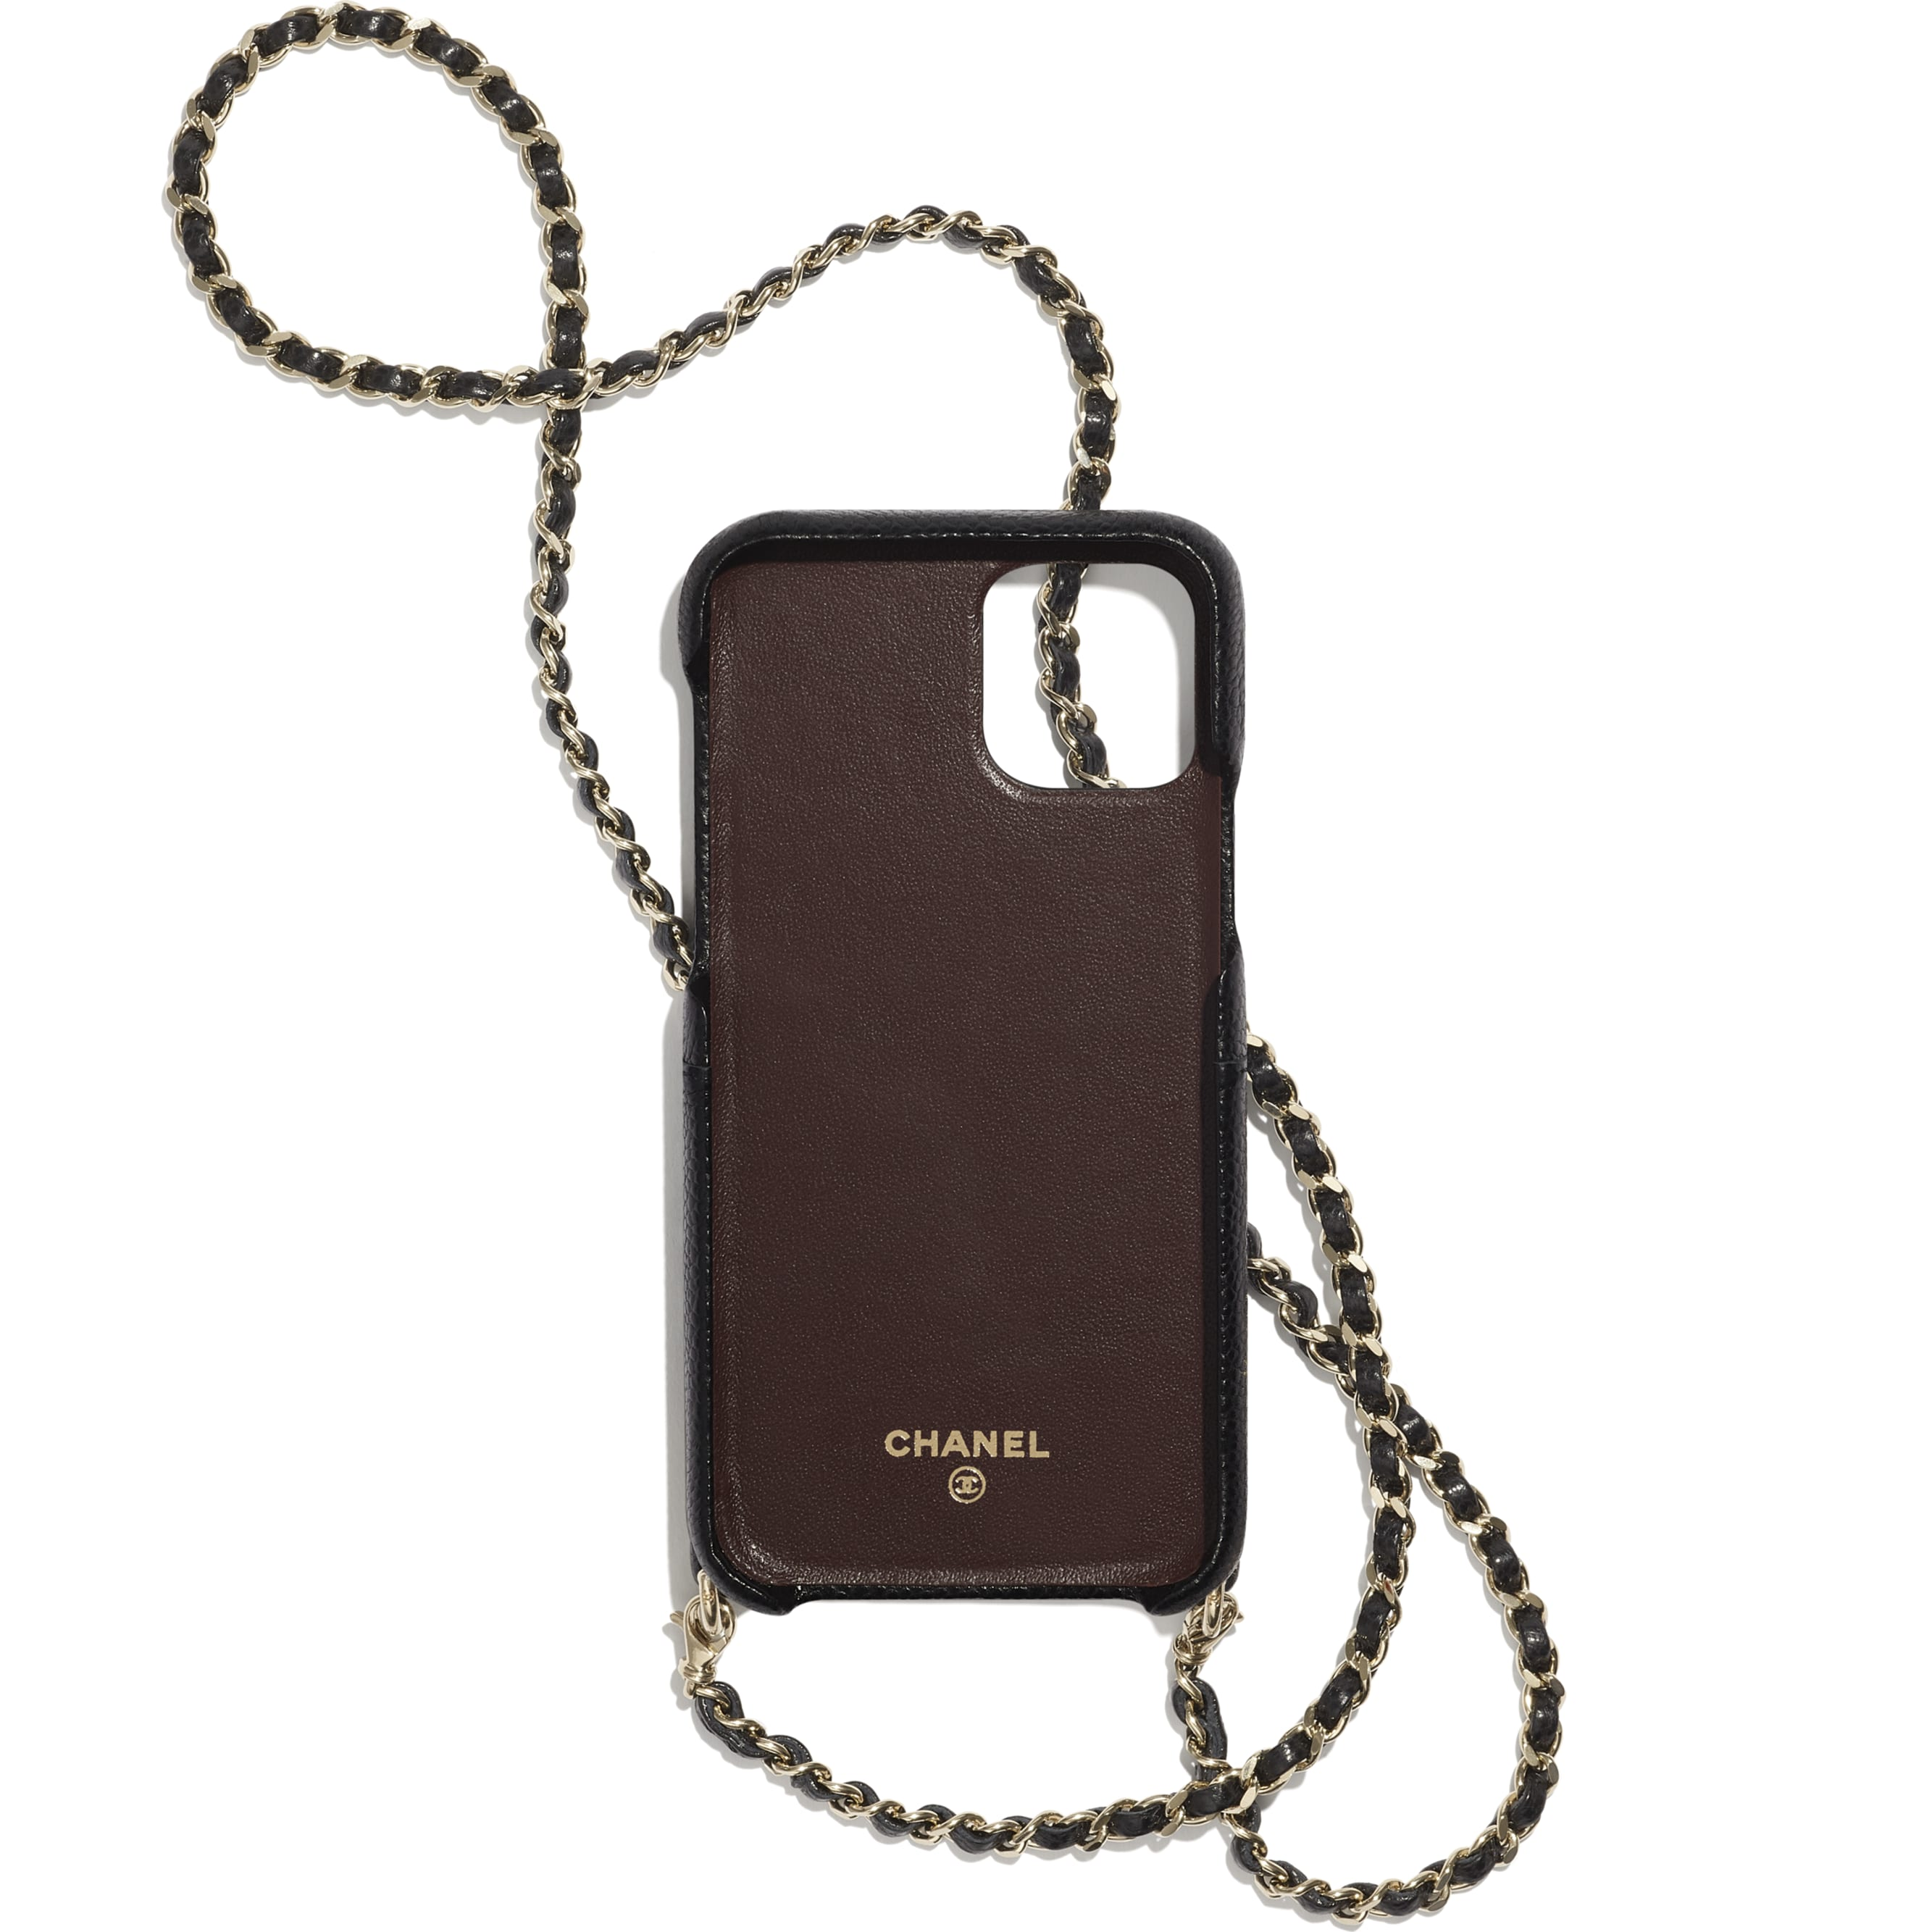 Case for iPhone XI Pro with Chain - Black - Grained Lambskin & Gold-Tone Metal - CHANEL - Alternative view - see standard sized version